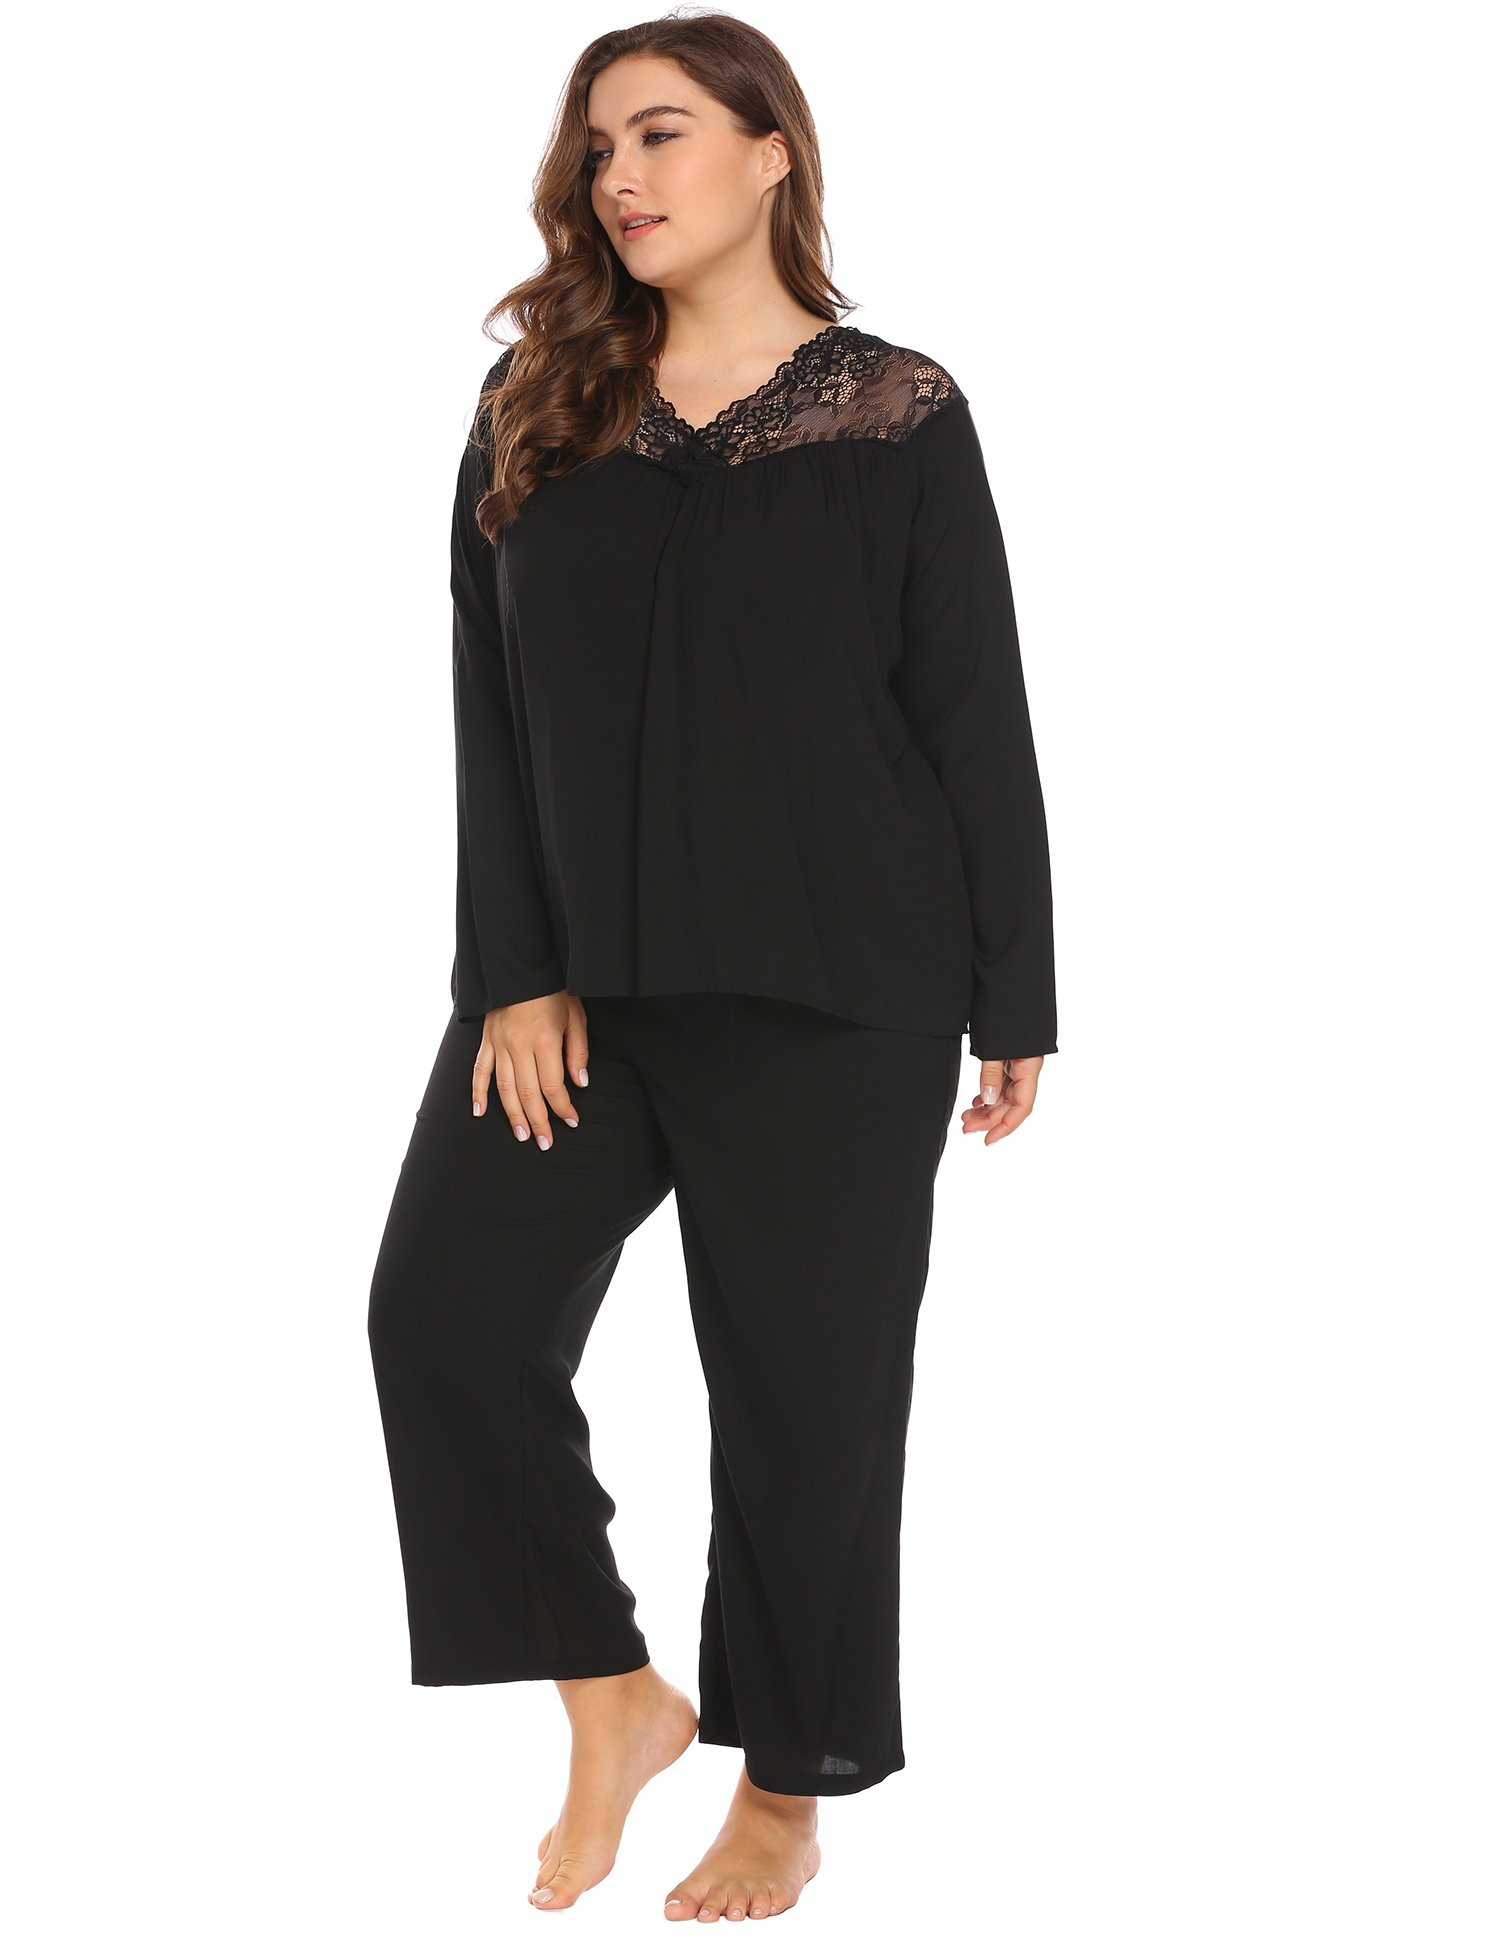 Women's Plus Size Loose Fit V-Neck Long Sleeve Soft Sleepwear Lace Patchwork Tops & Pants Pajama Set by Vpicuo